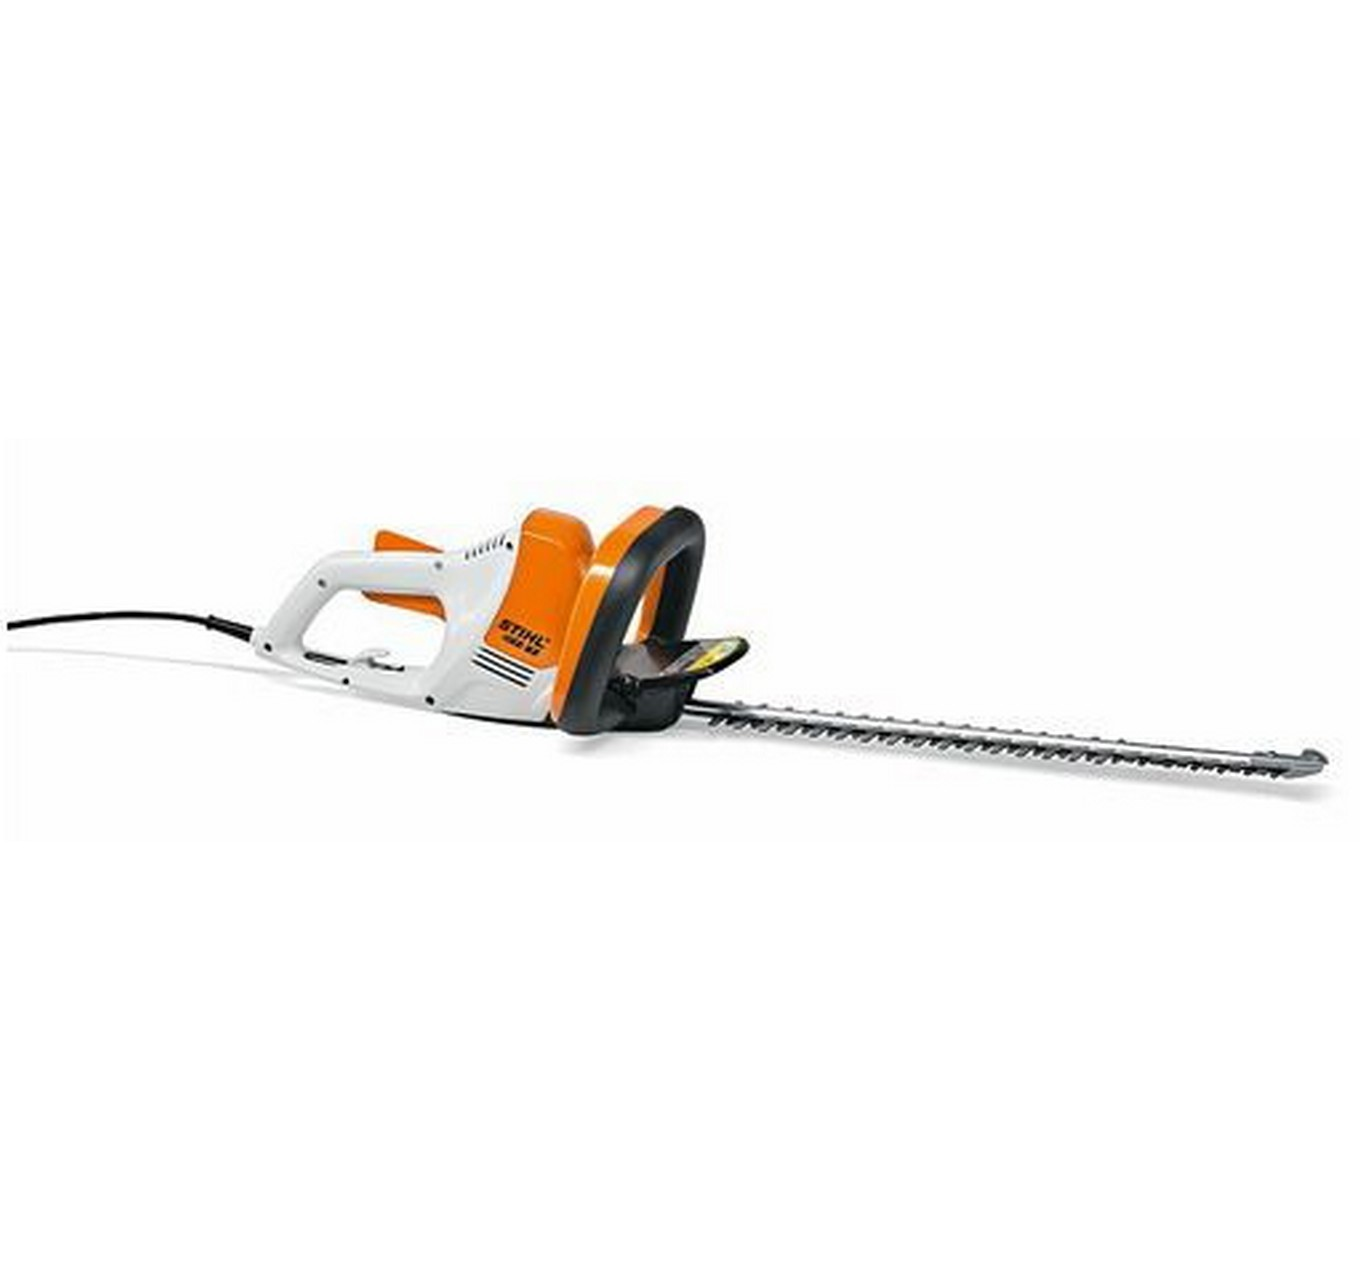 HSE 52 Hedge Trimmer 20